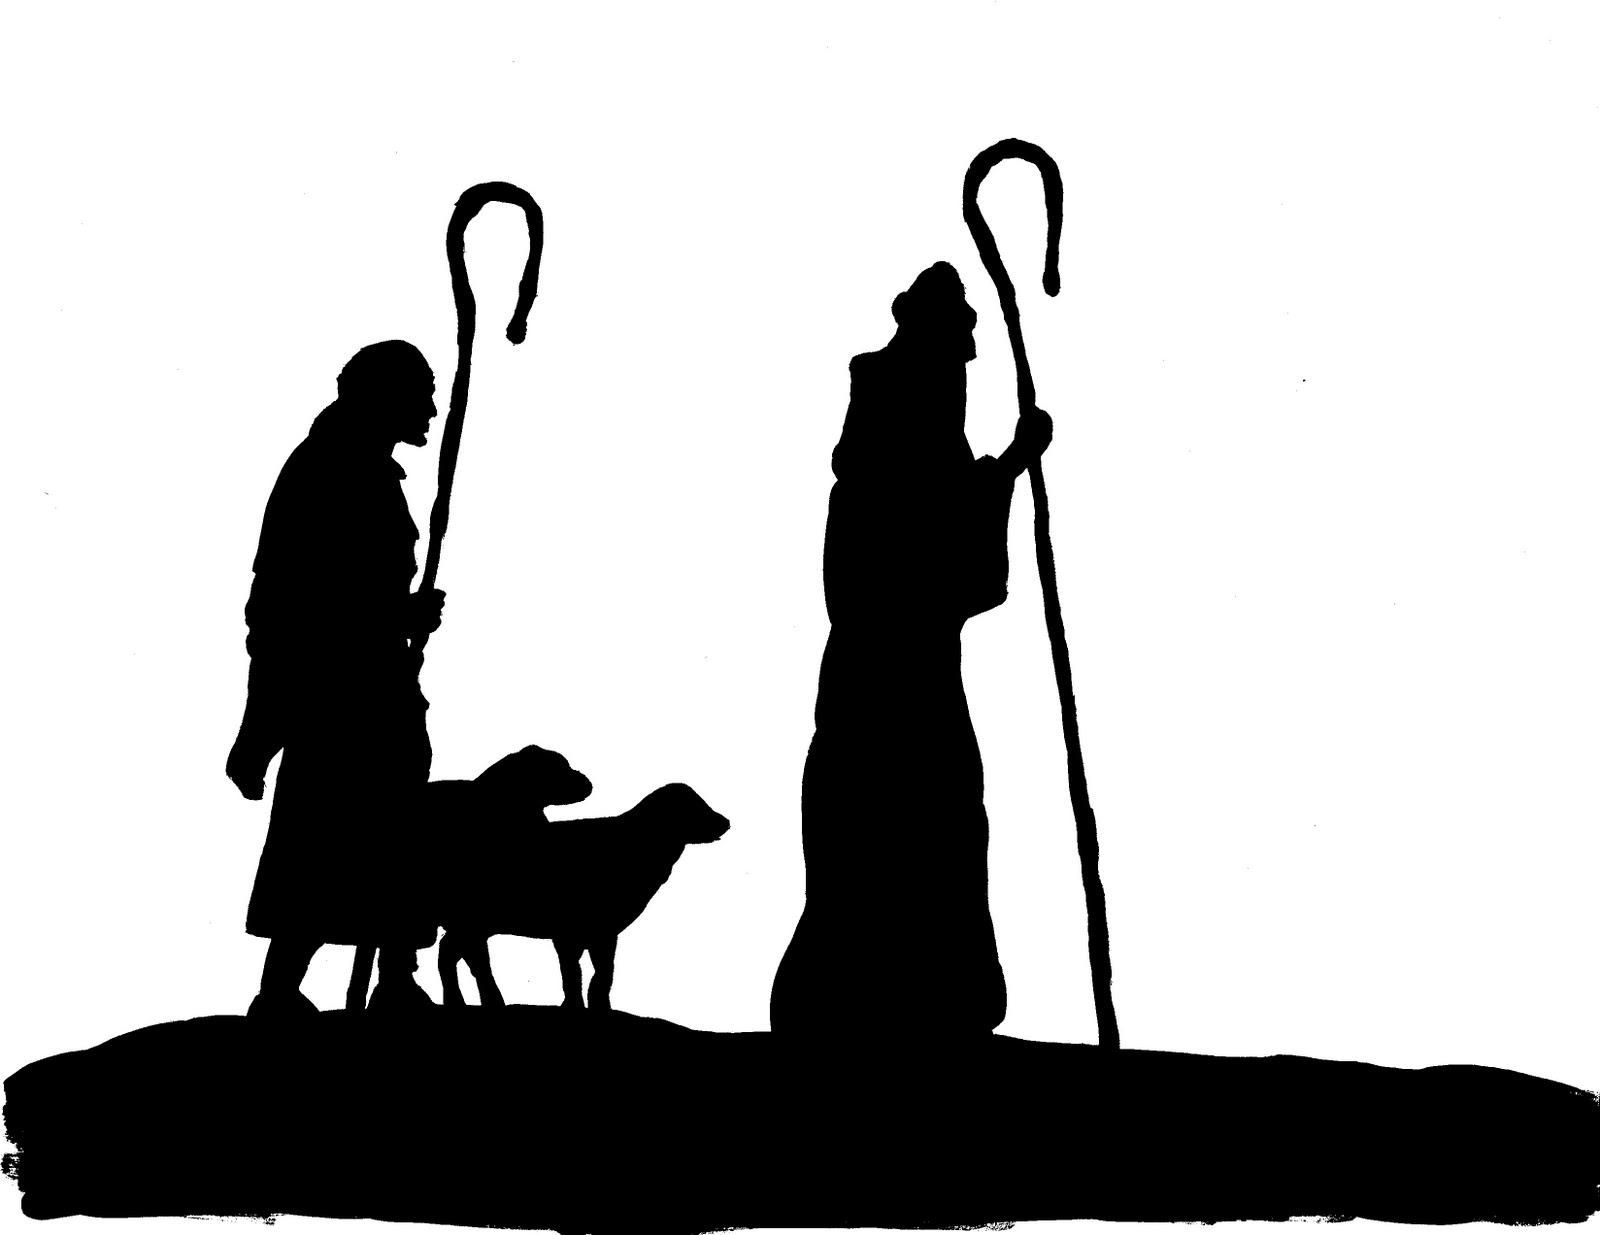 Shepherd silhouette clipart vector 40 Awesome shepherd silhouette clip art | yos | Nativity ... vector